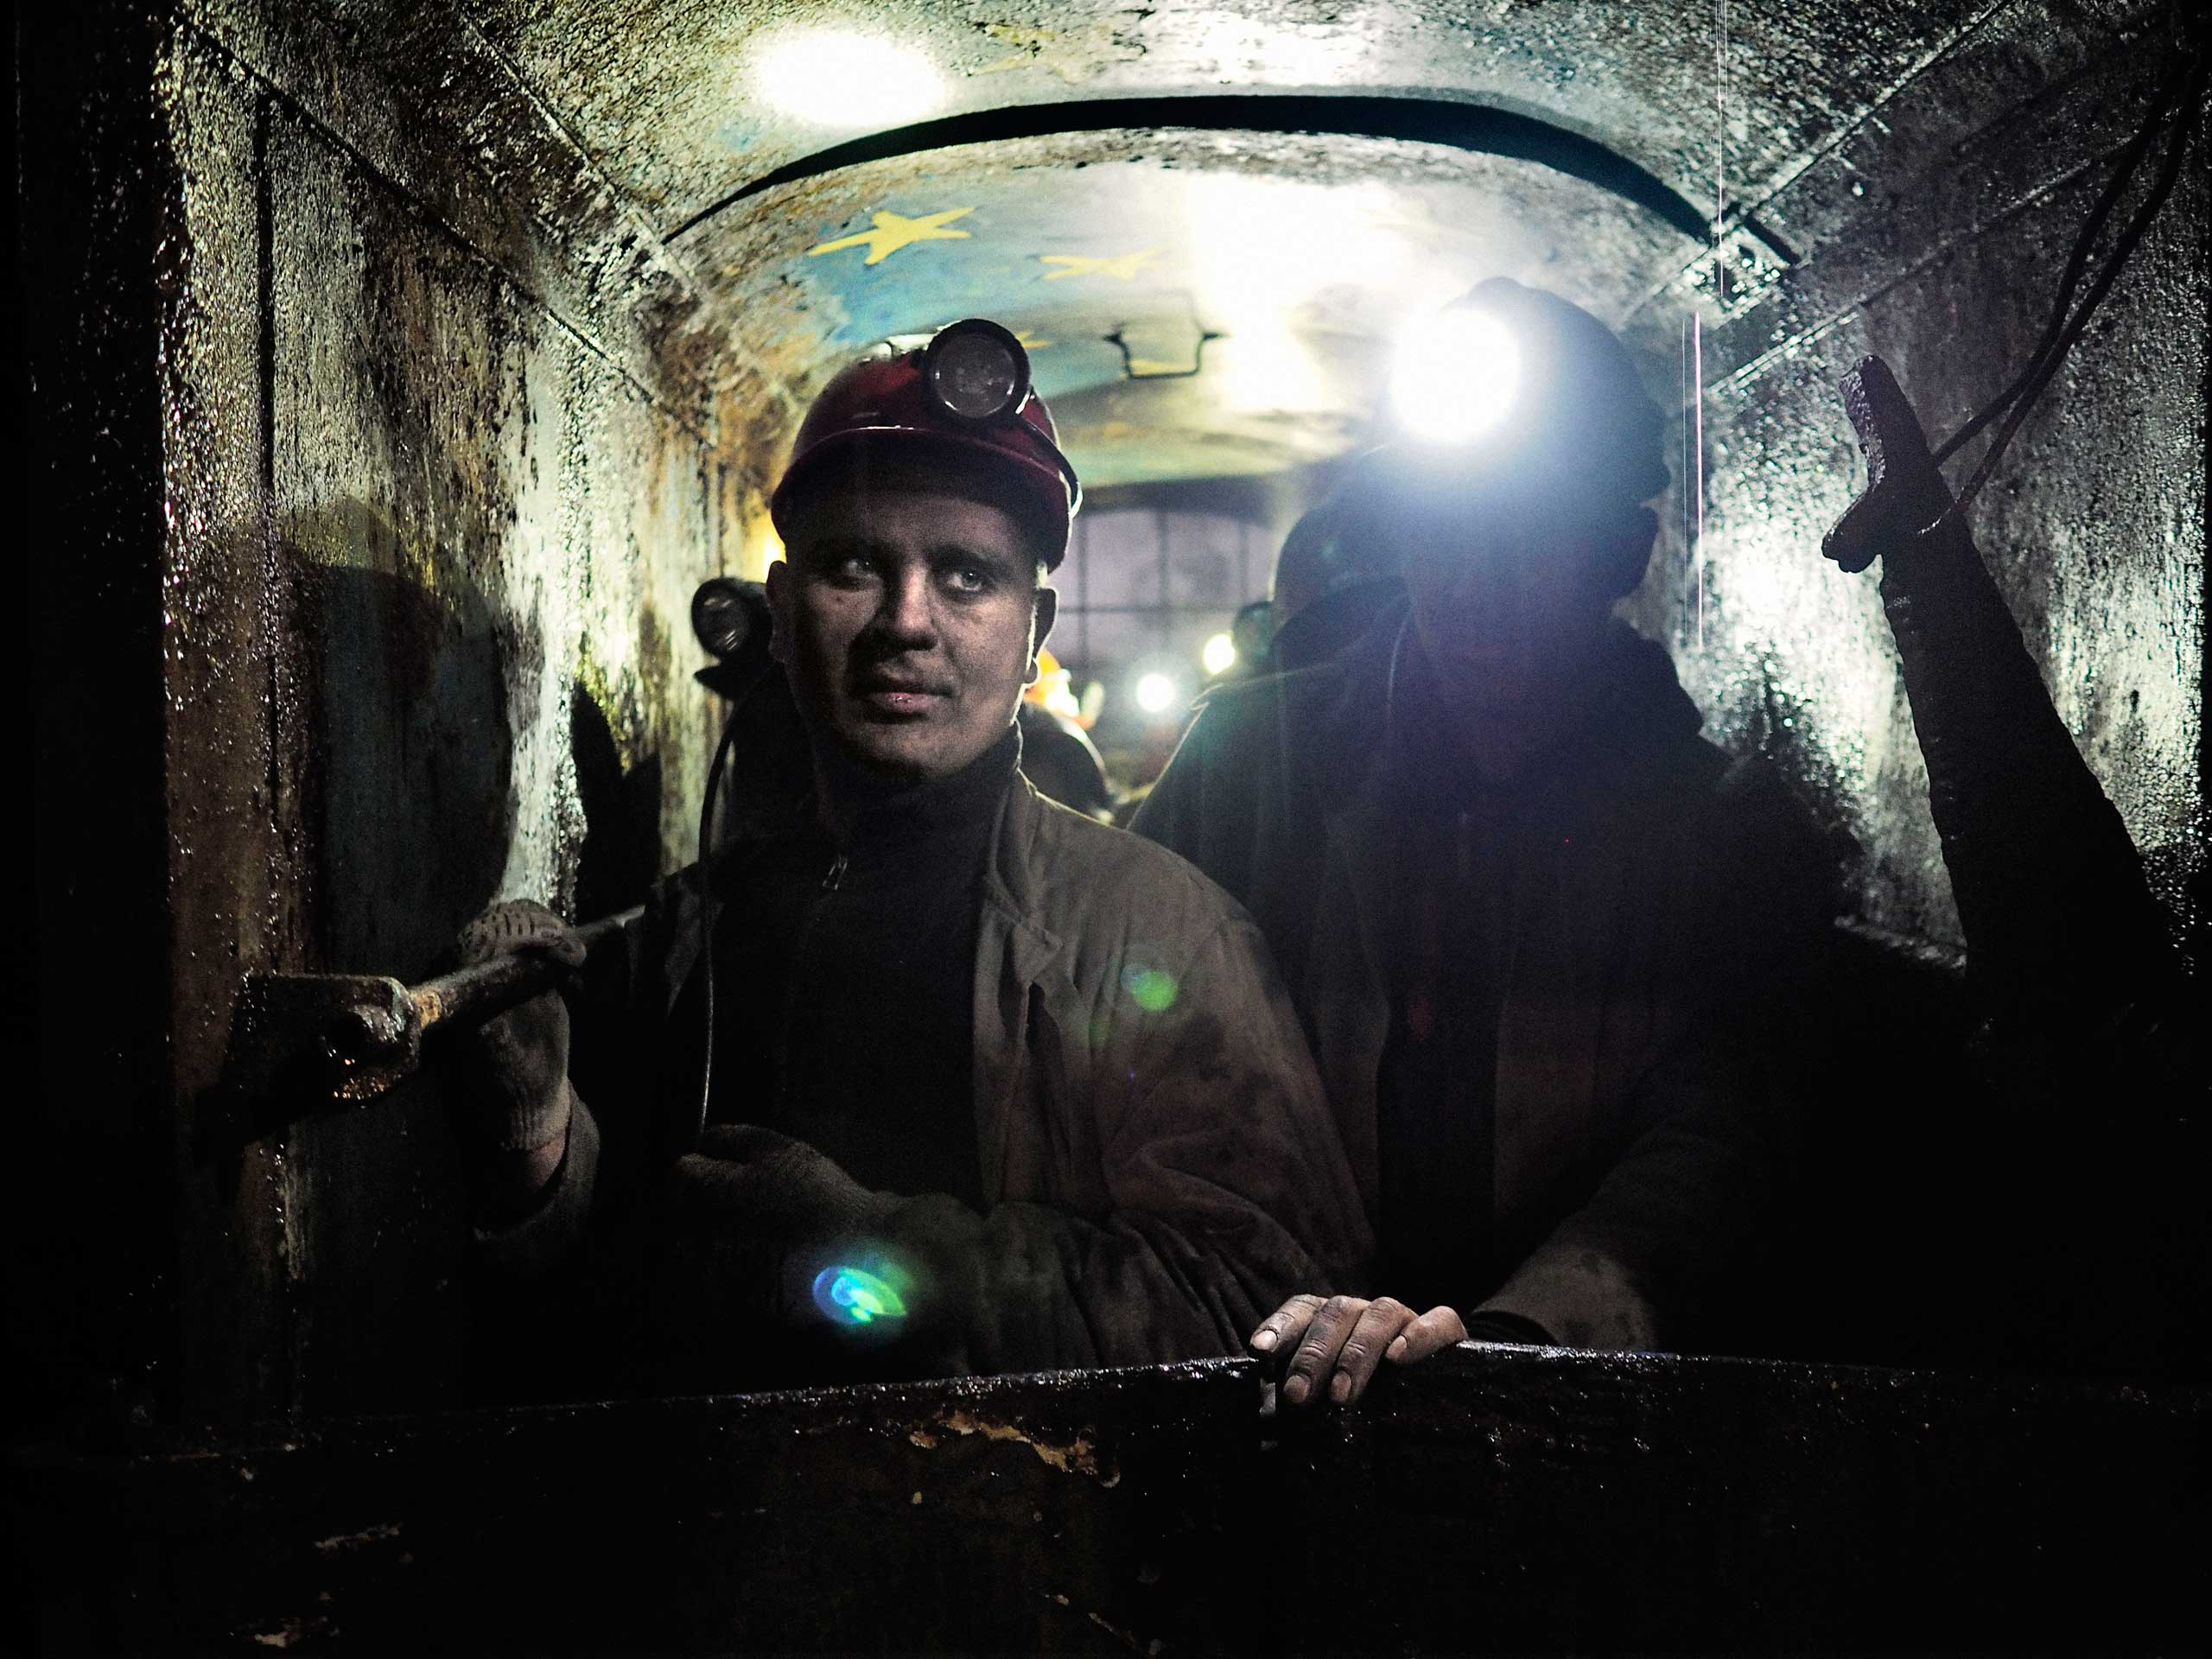 TIME LightBox: Beneath the Front Lines of the War in Eastern UkraineMiners at the Chelyuskintsev coal mine ride in an elevator toward ground level. Petrovskyi district, Donetsk, Ukraine. Nov. 24, 2014.